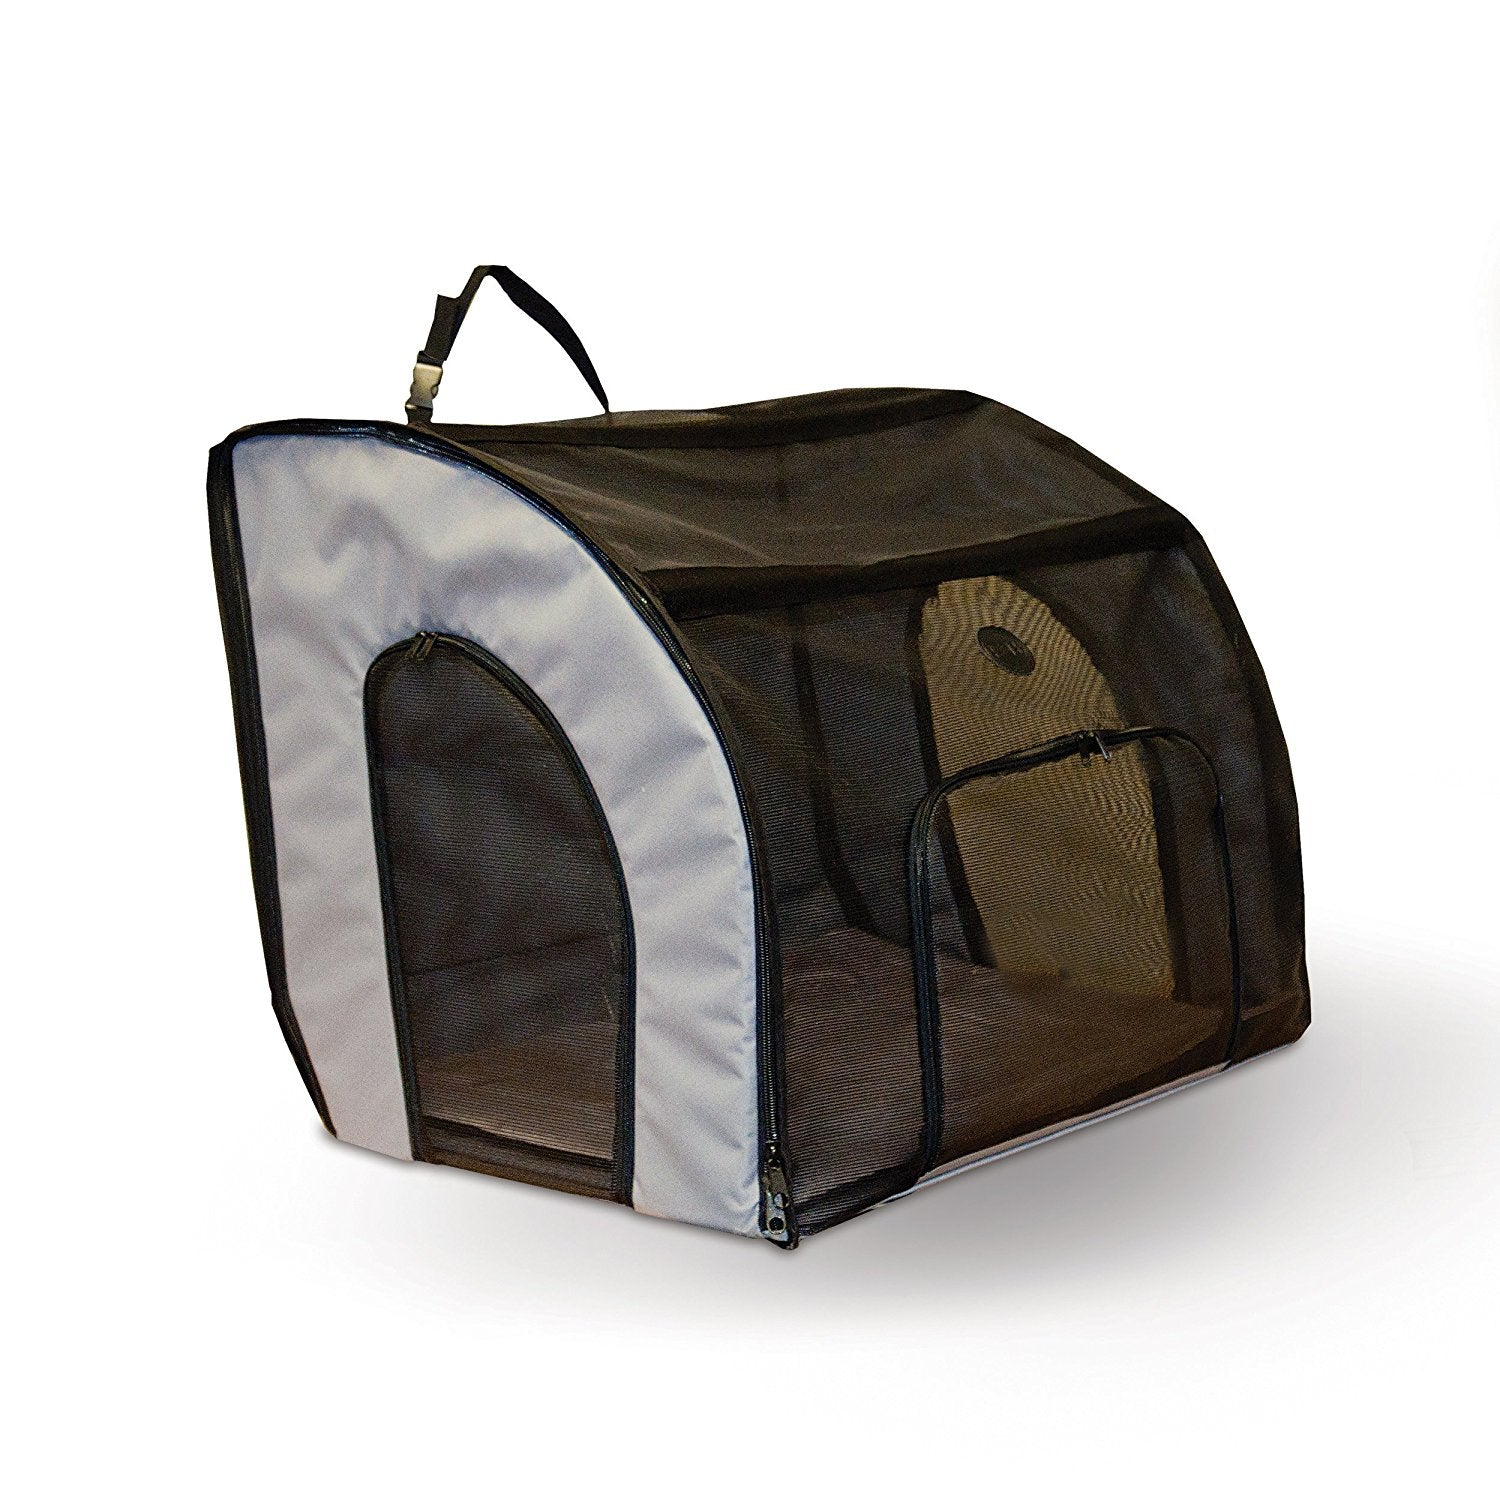 K&H Manufacturing Kh7670 Pet Travel Safety Carrier